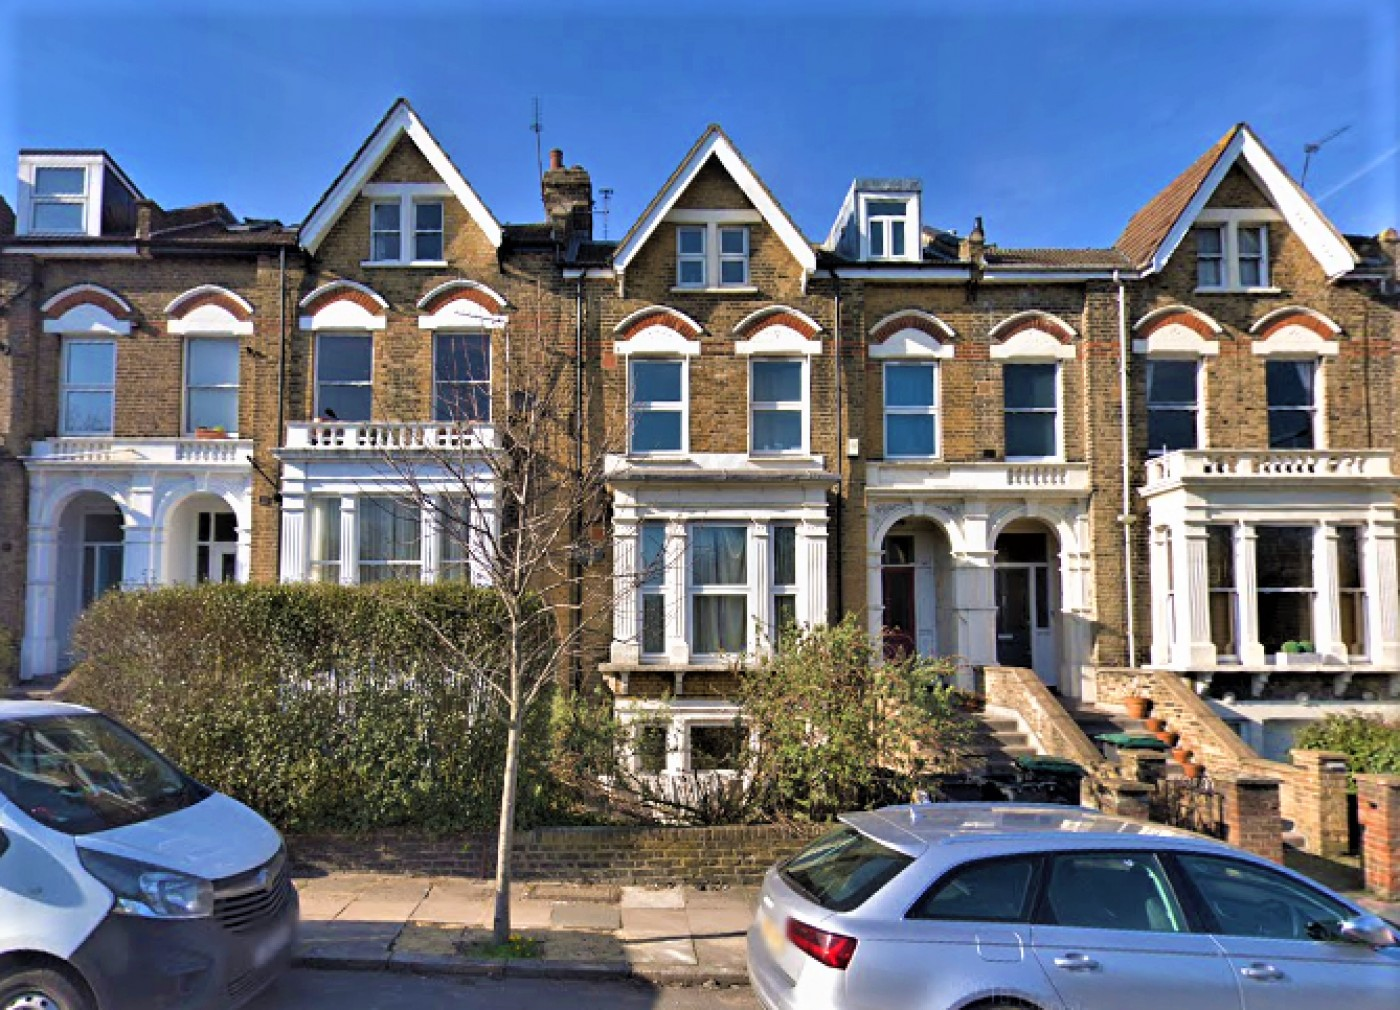 Images for Endymion Road N4 1EE EAID:931013c273837aec744cf2e7889cb460 BID:1